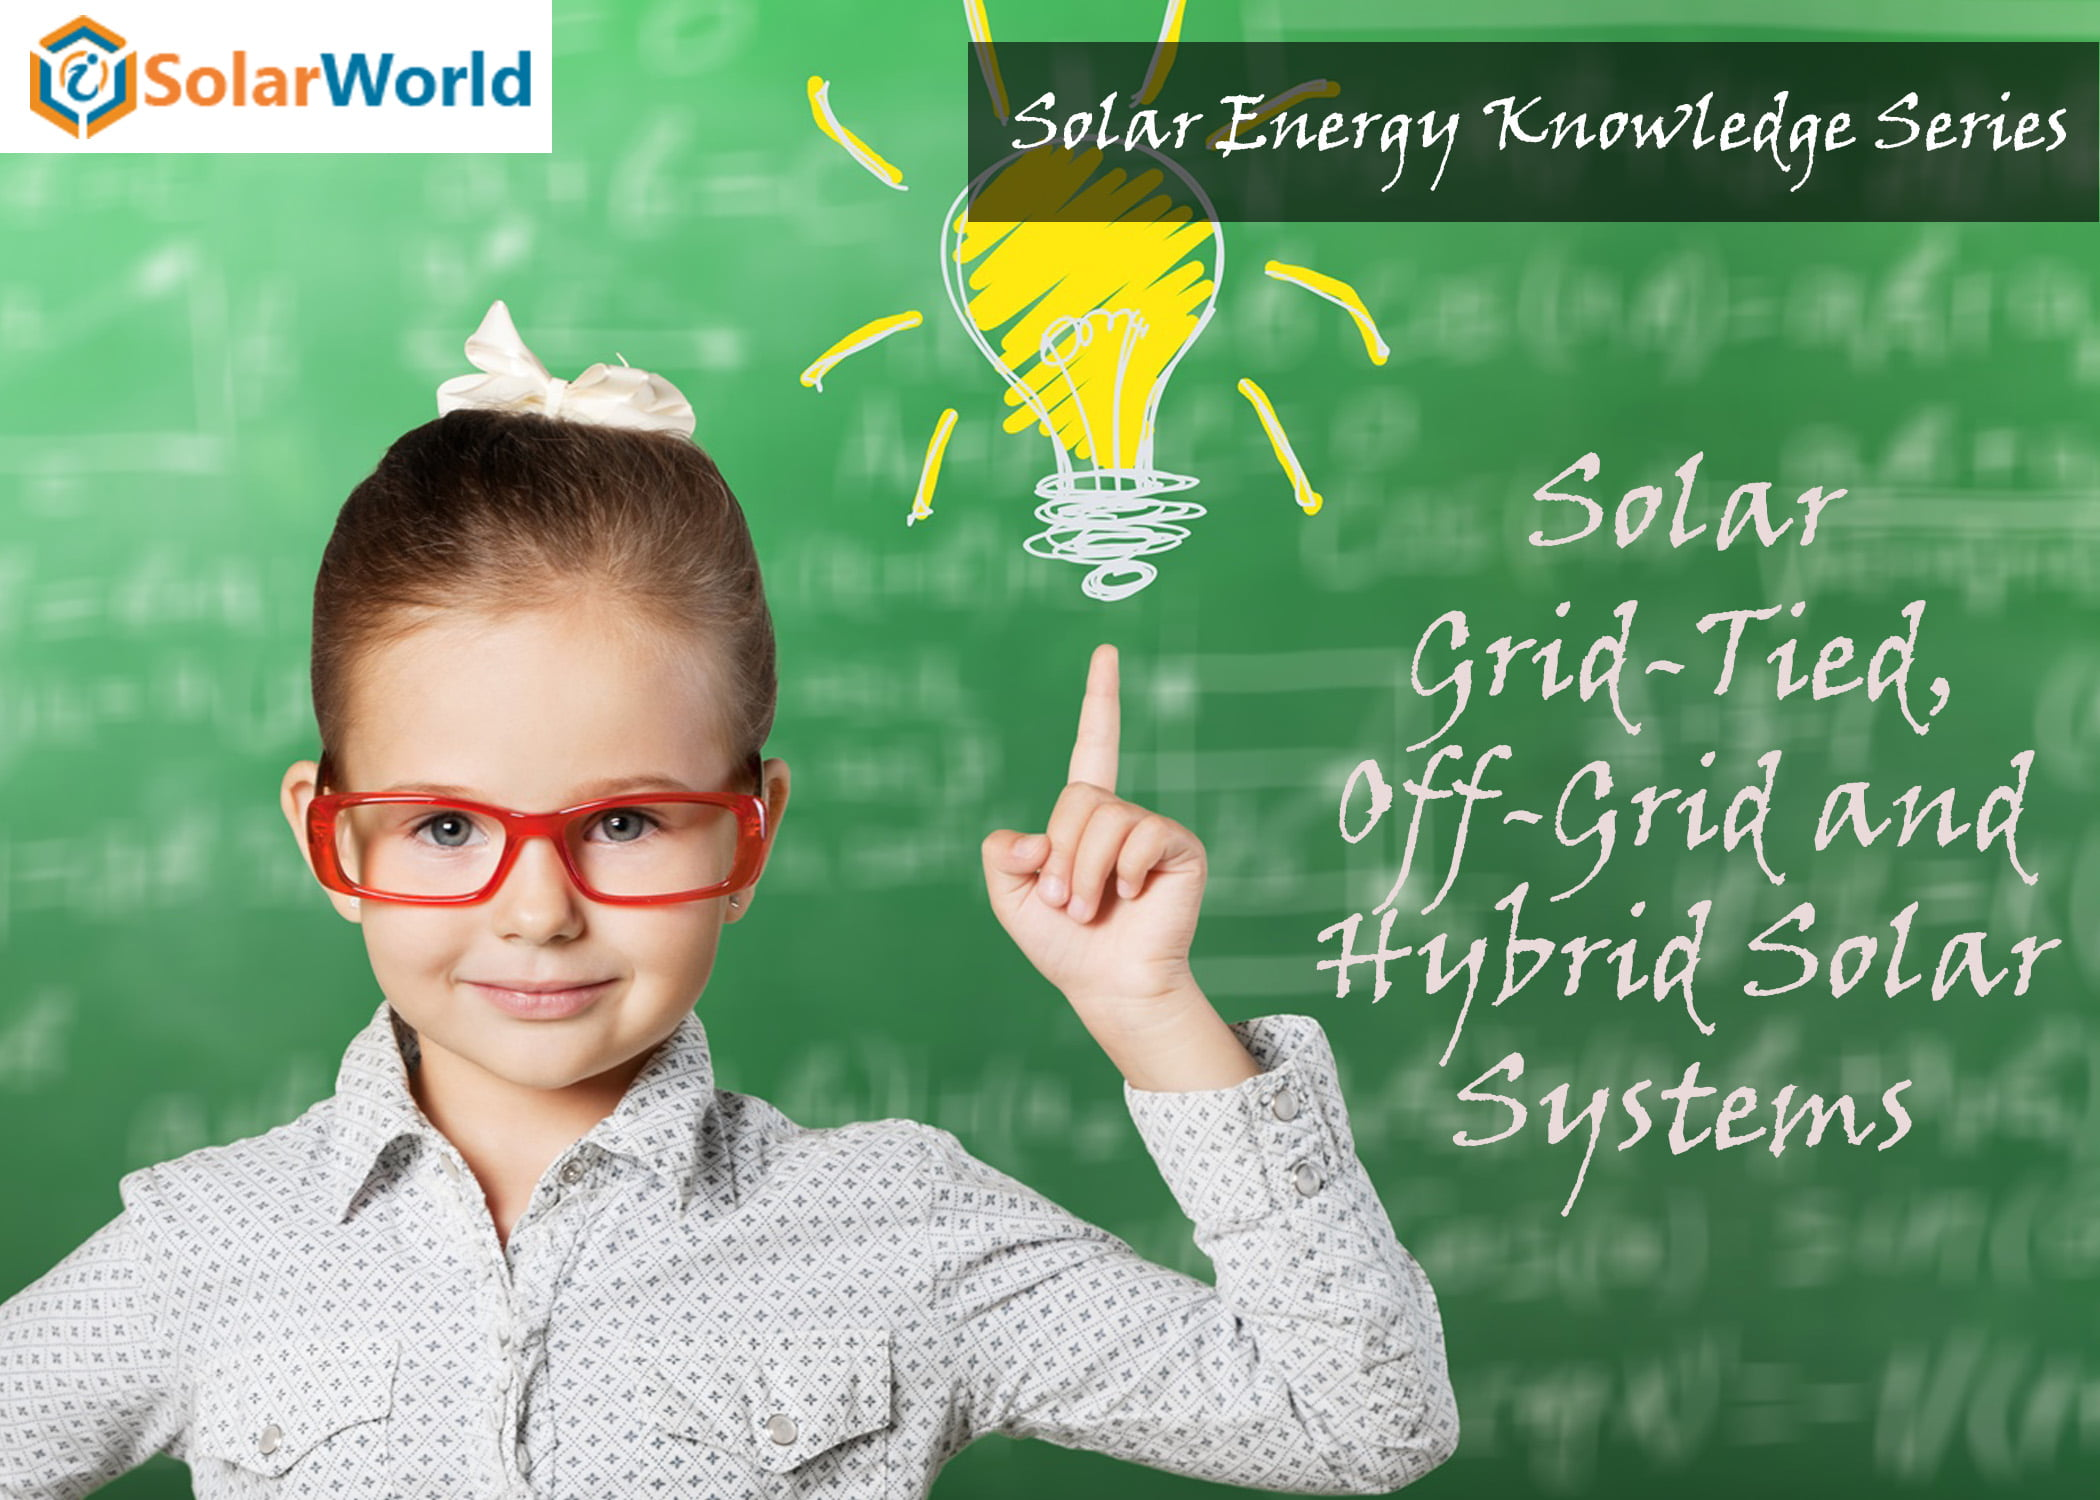 Solar energy knowledge series: Solar Grid-Tied, Off-Grid System and Hybrid Solar Systems